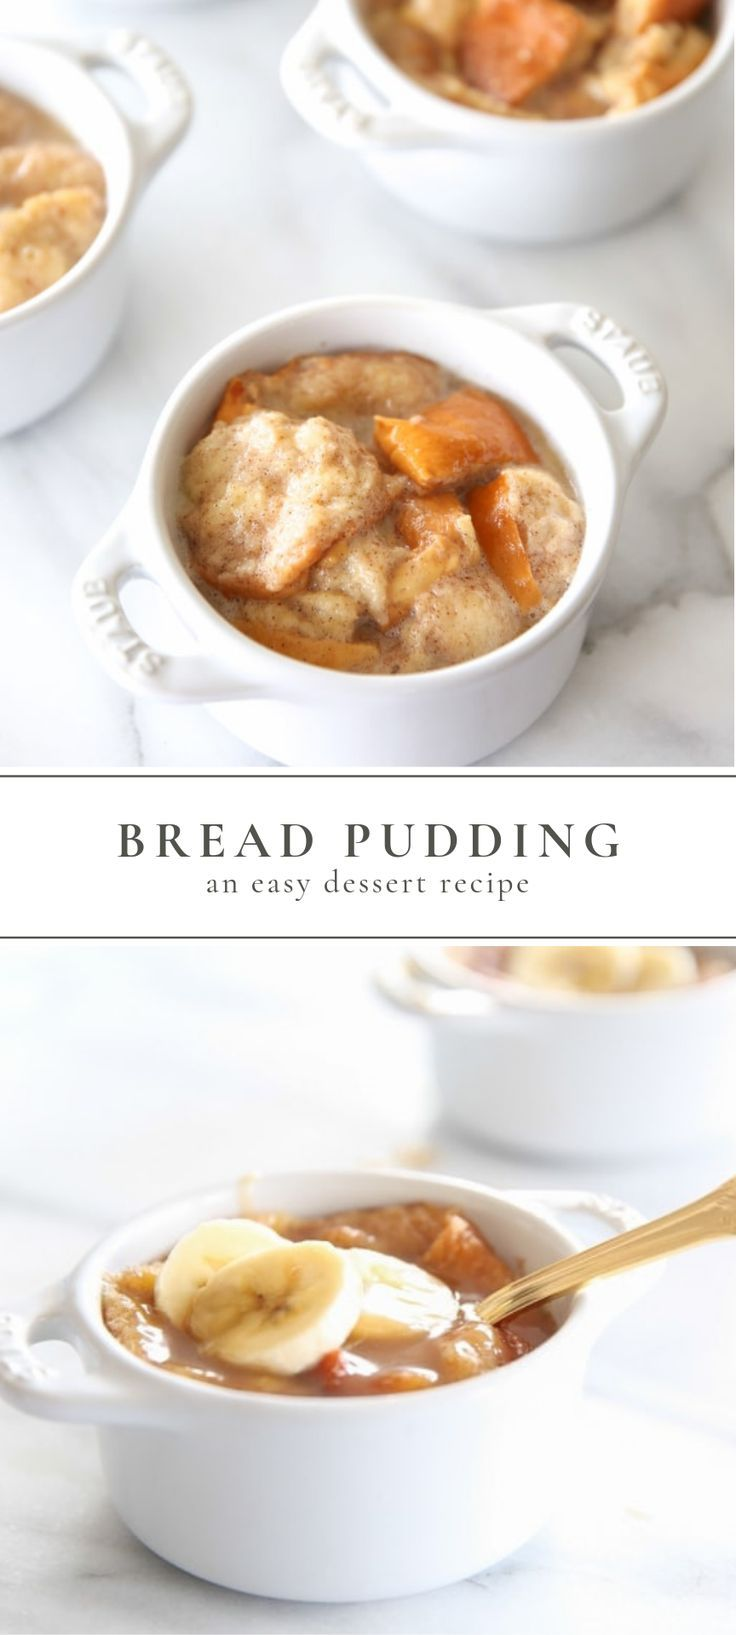 Easy Bread Pudding Recipe with Bourbon Sauce | Julie Blanner